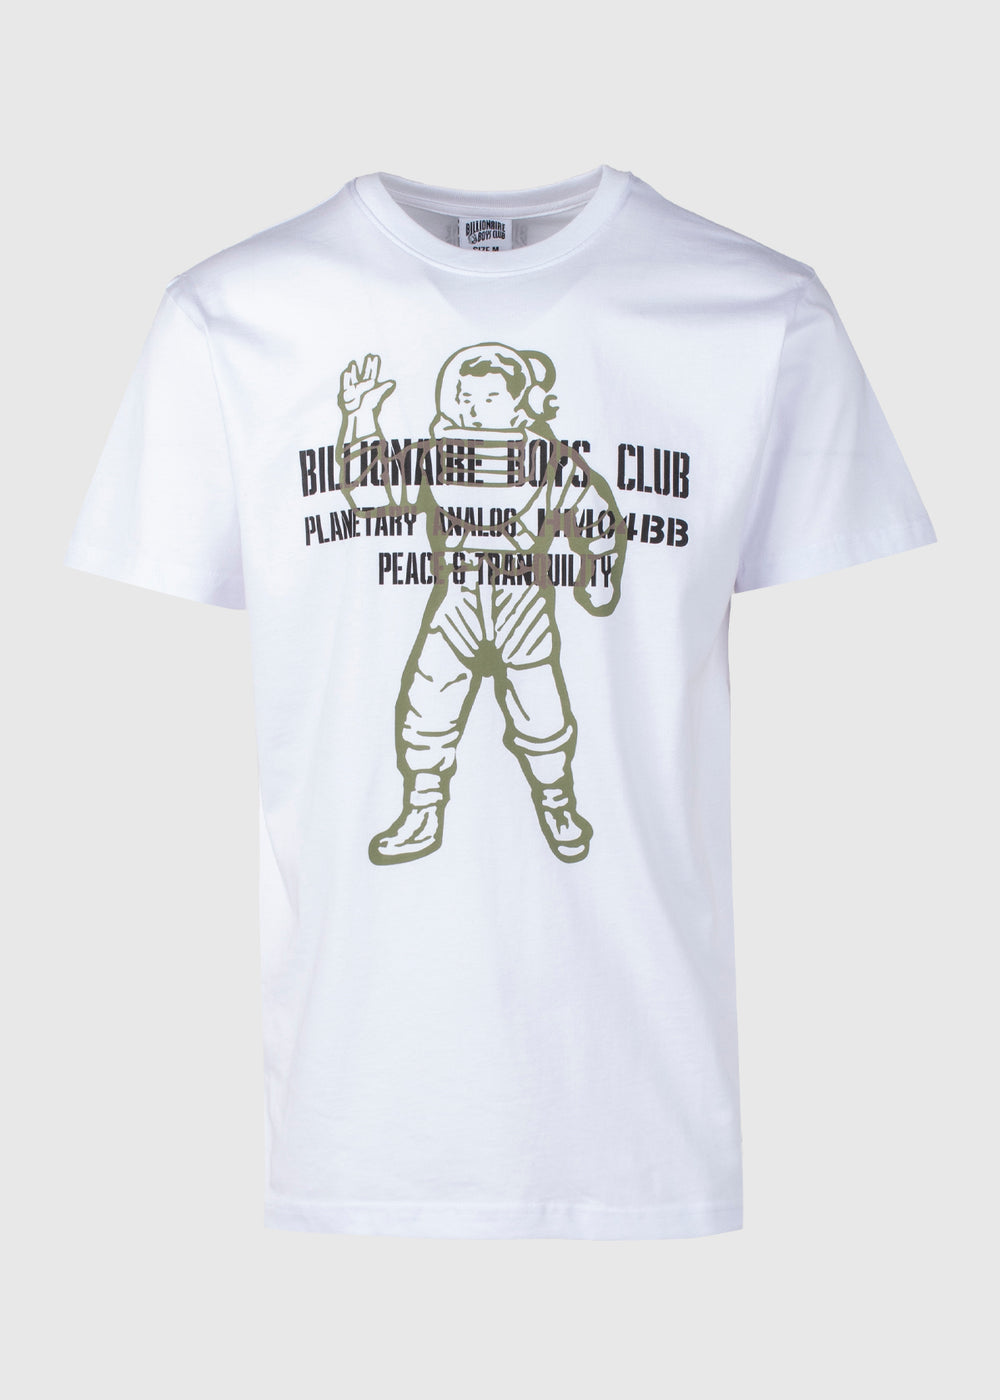 billionaire-boys-club-visitor-ss-tee-891-6204-wht-wht-1